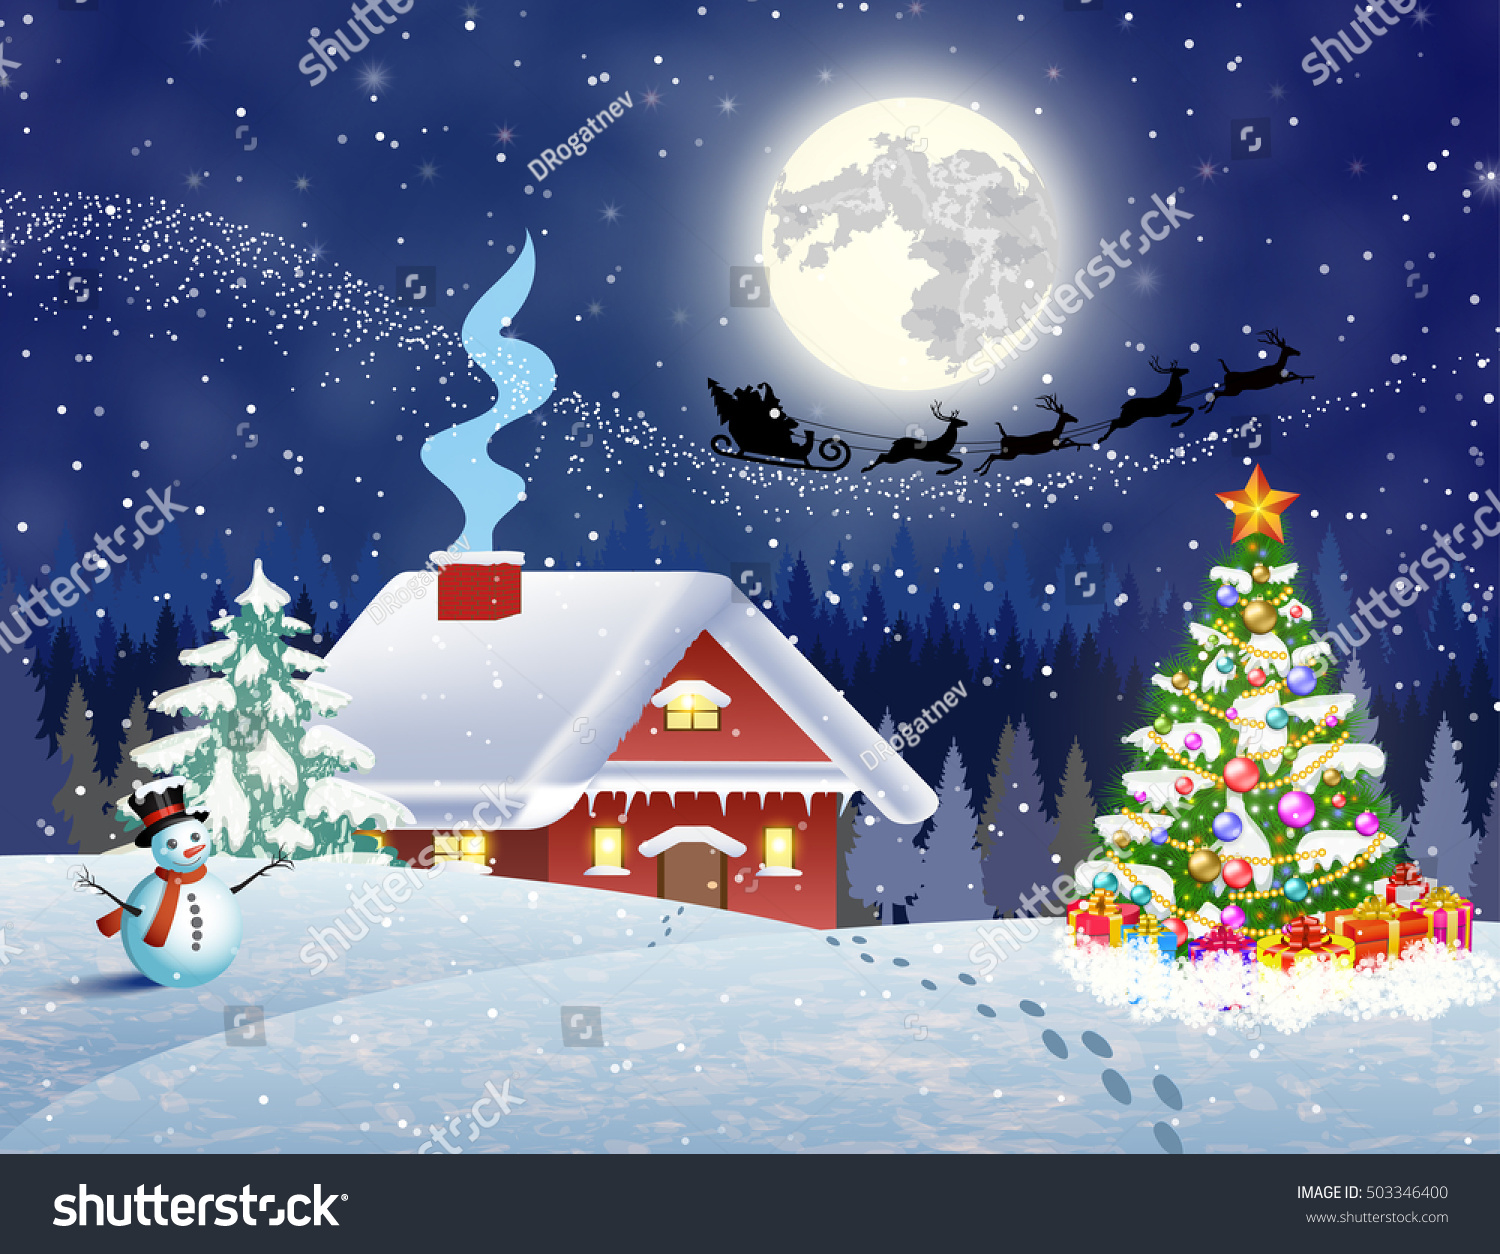 House snowy christmas landscape night christmas stock for Christmas landscape images